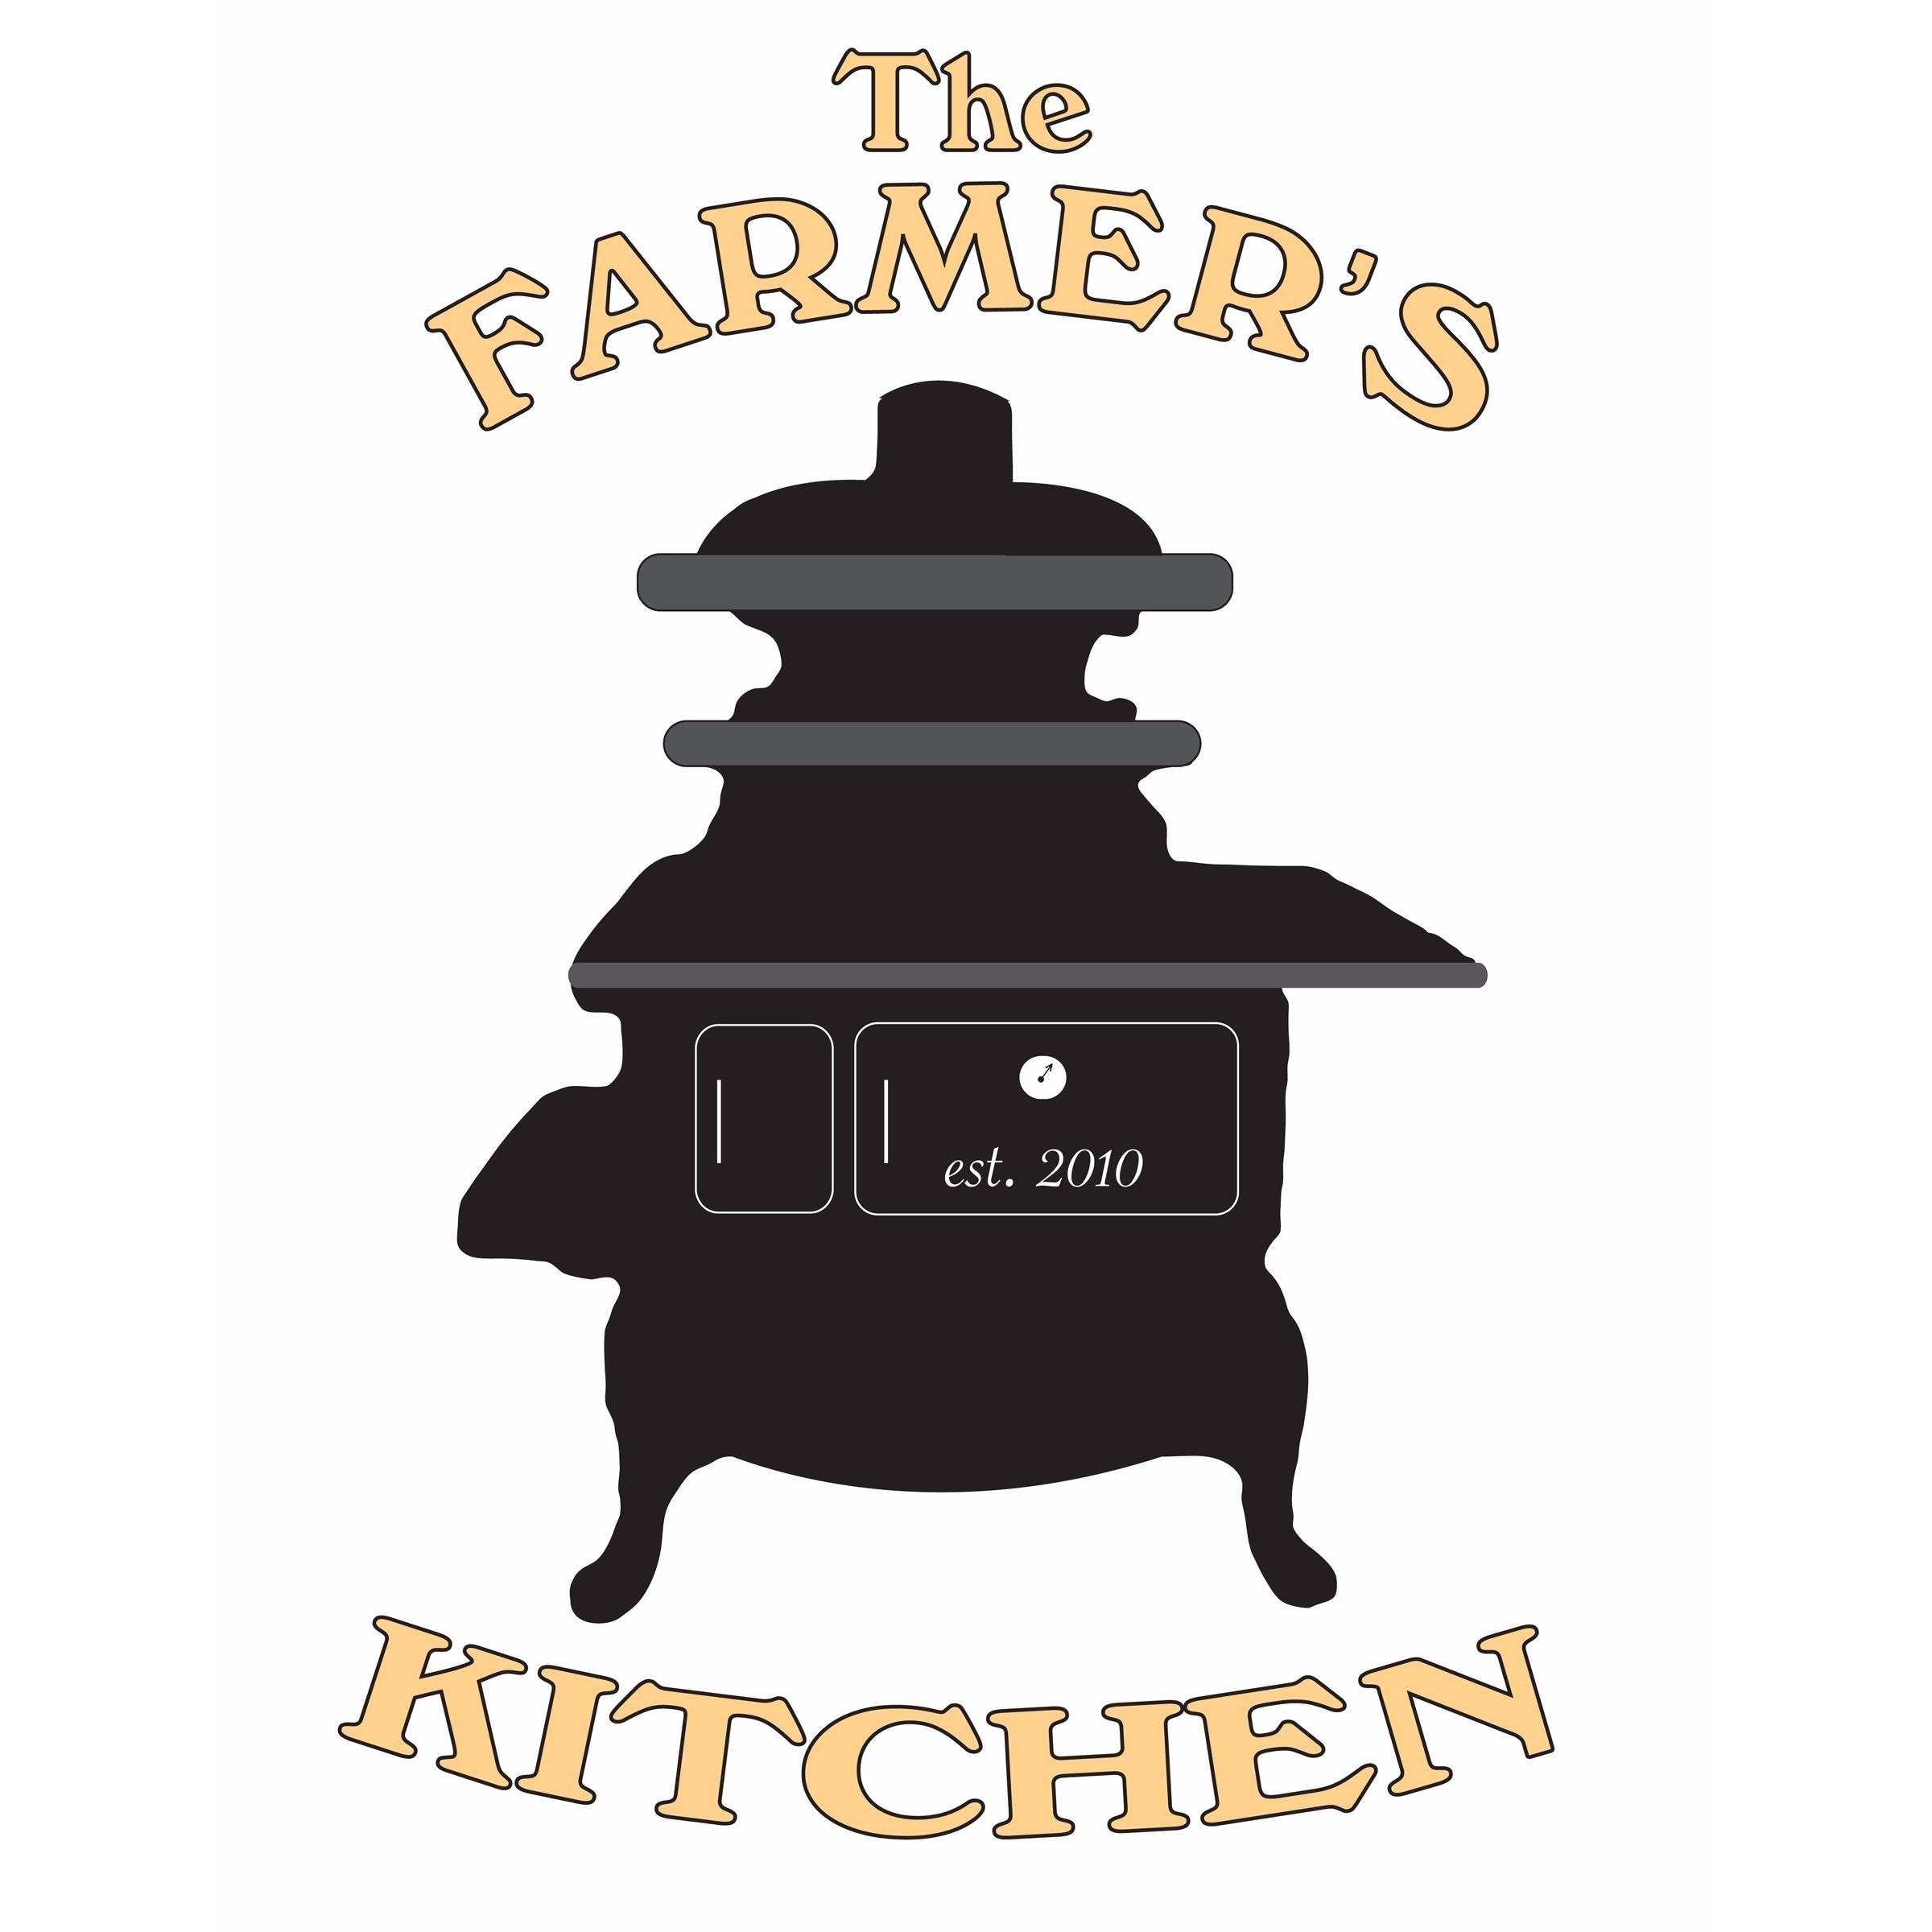 The Farmer's Kitchen image 11